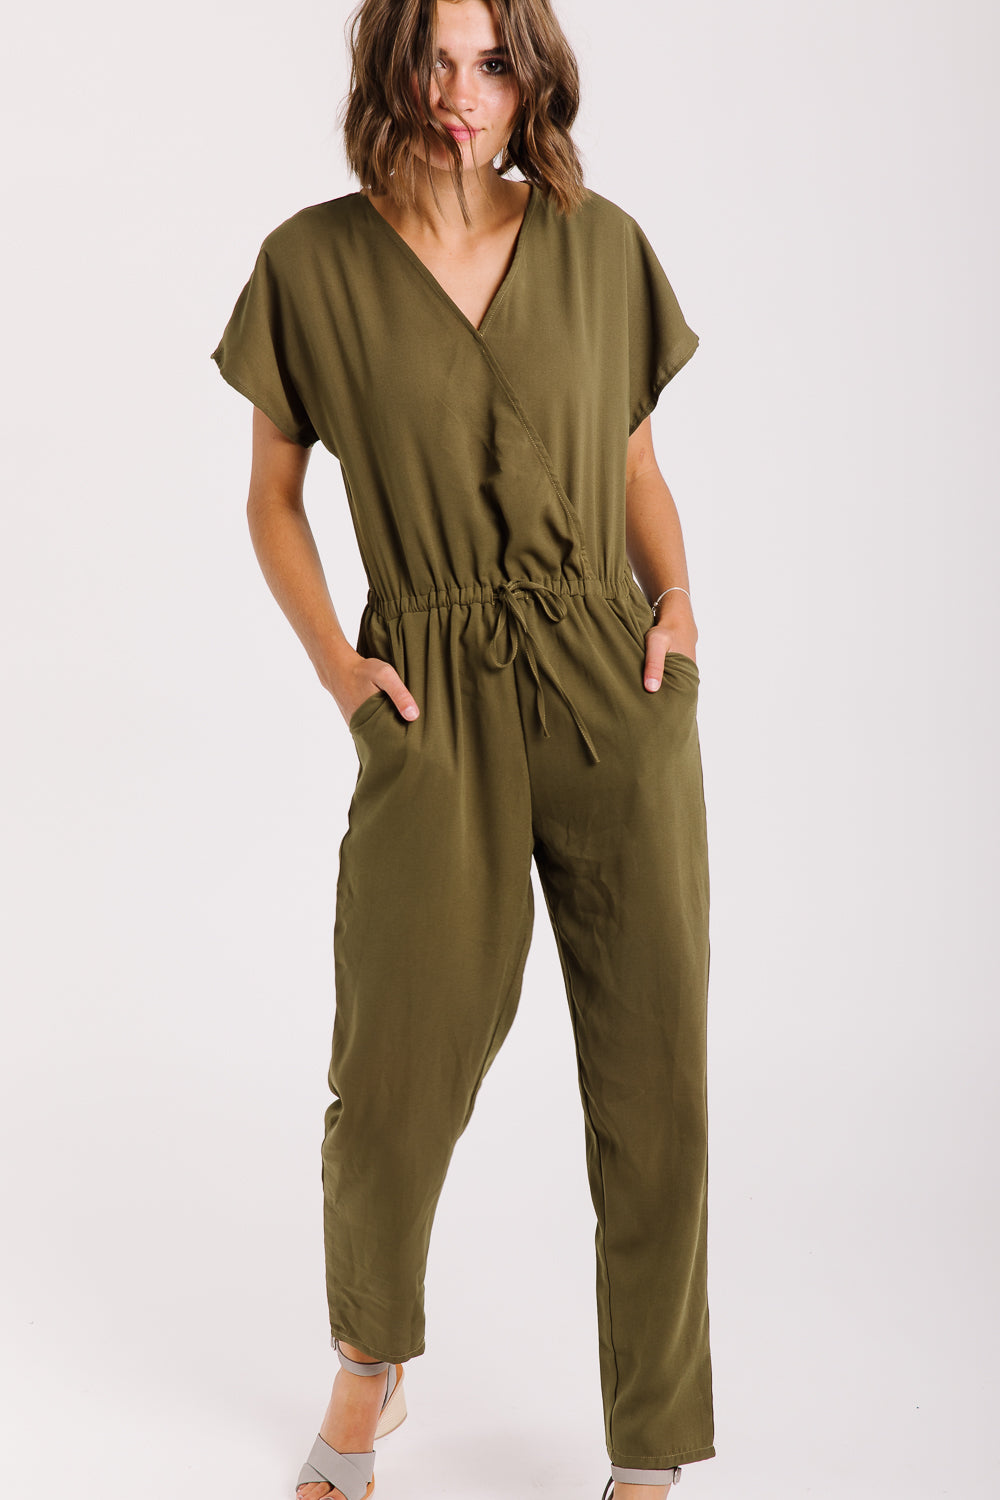 The Jasper Wrap Jumpsuit in Olive